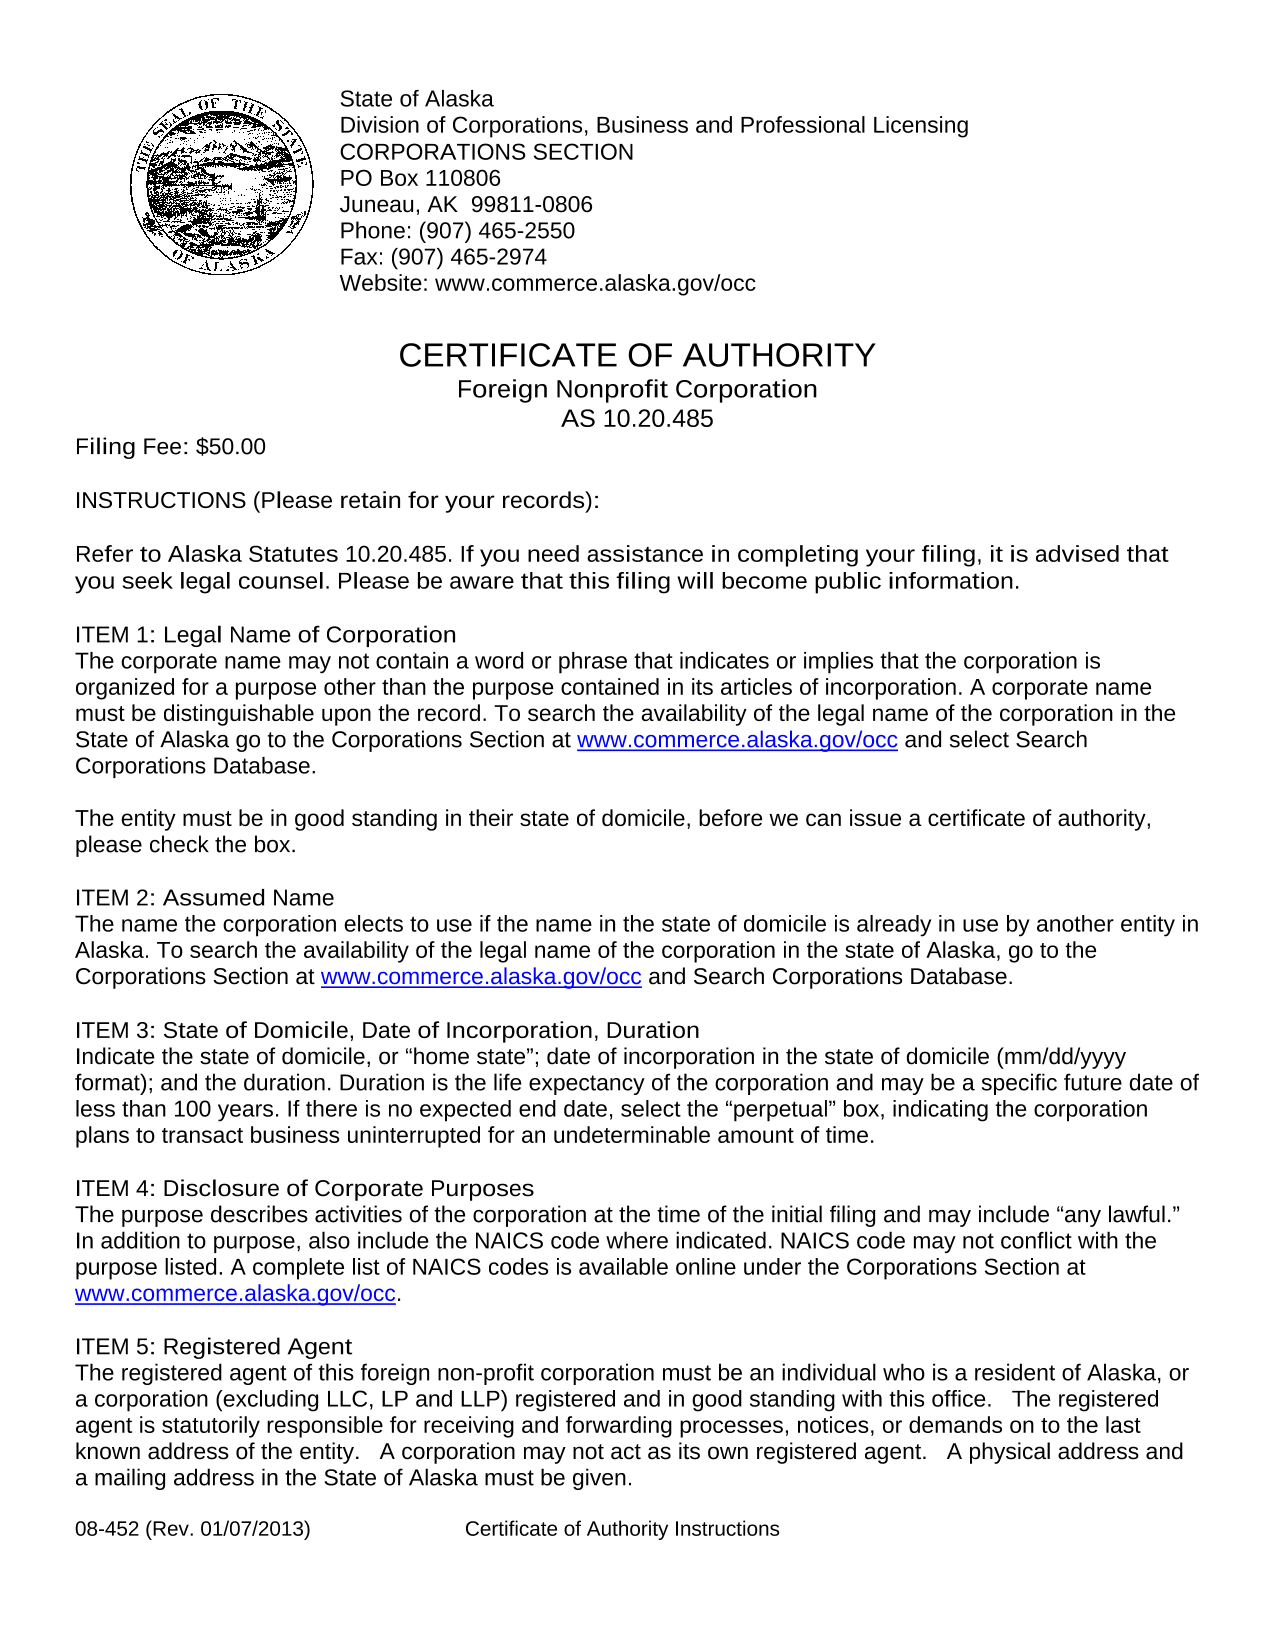 alaska-foreign-nonprofit-certificate-of-authority